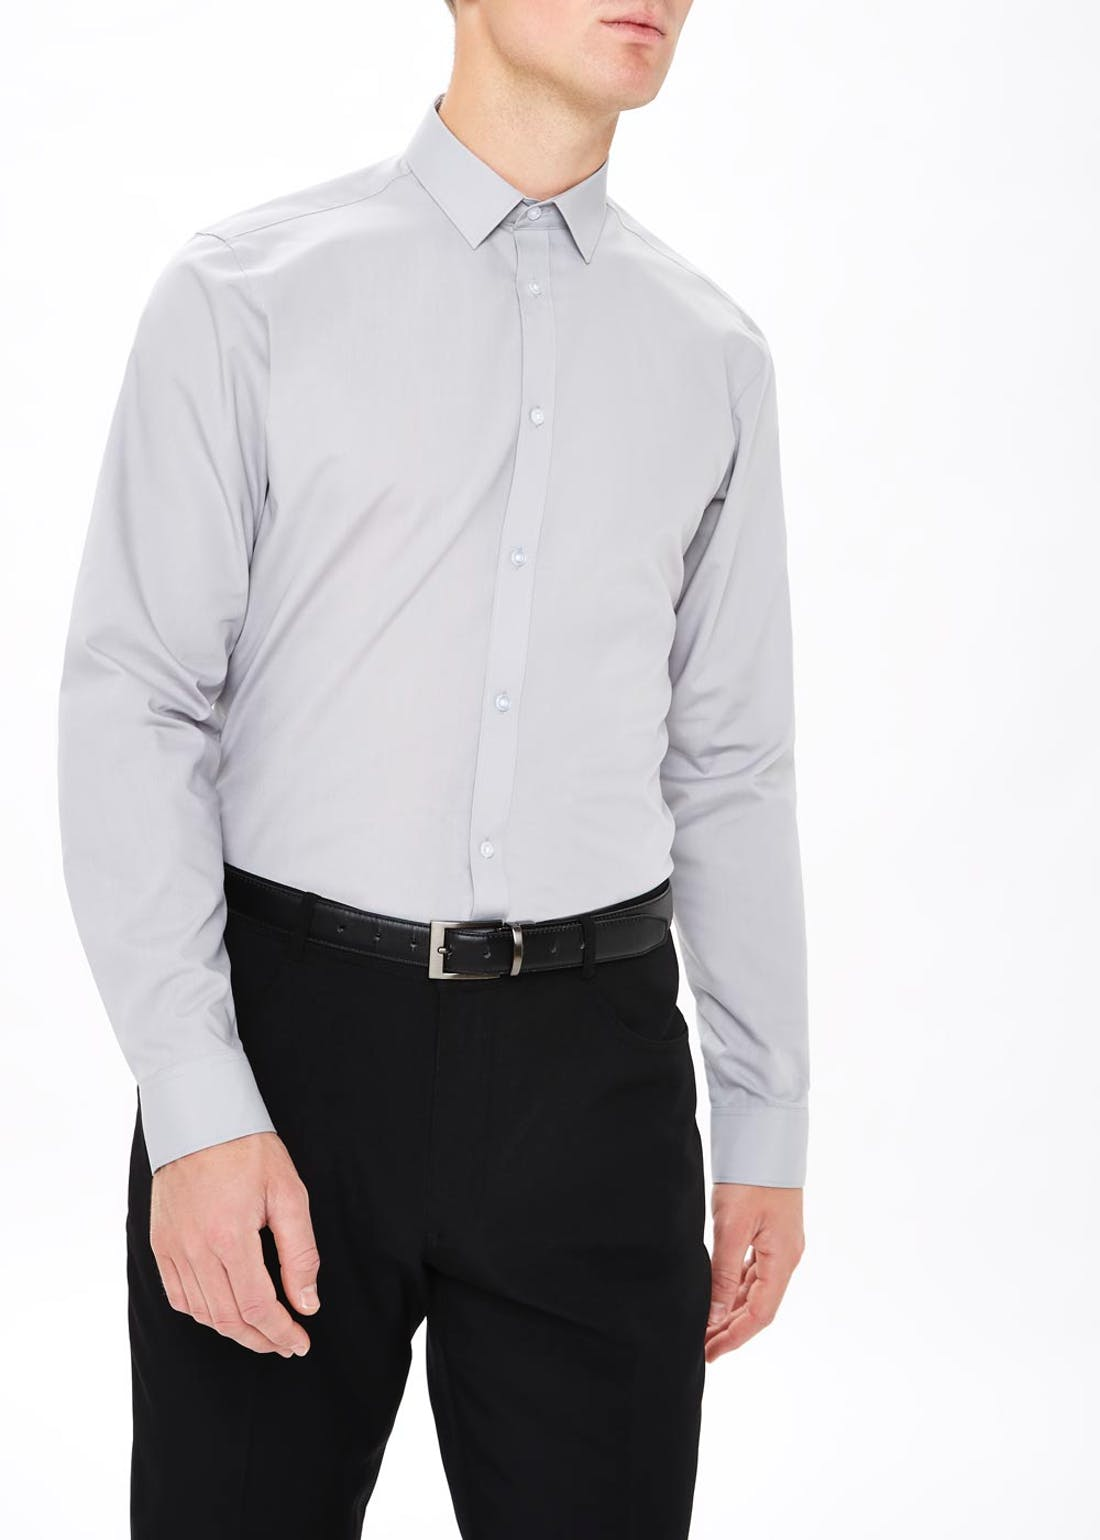 Taylor & Wright Easy Care Slim Fit Long Sleeve Shirt